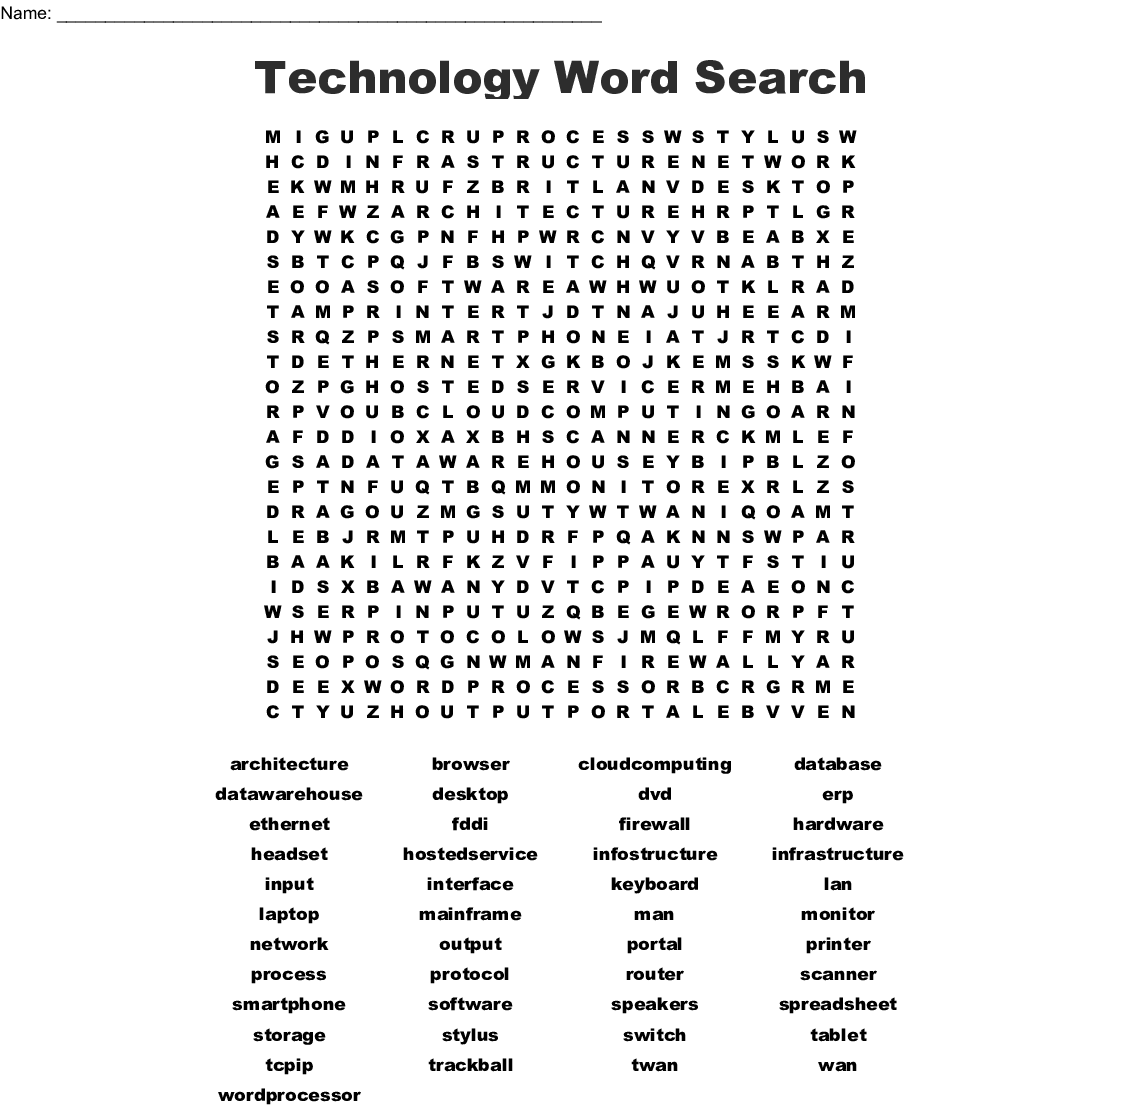 Information Technology Word Search